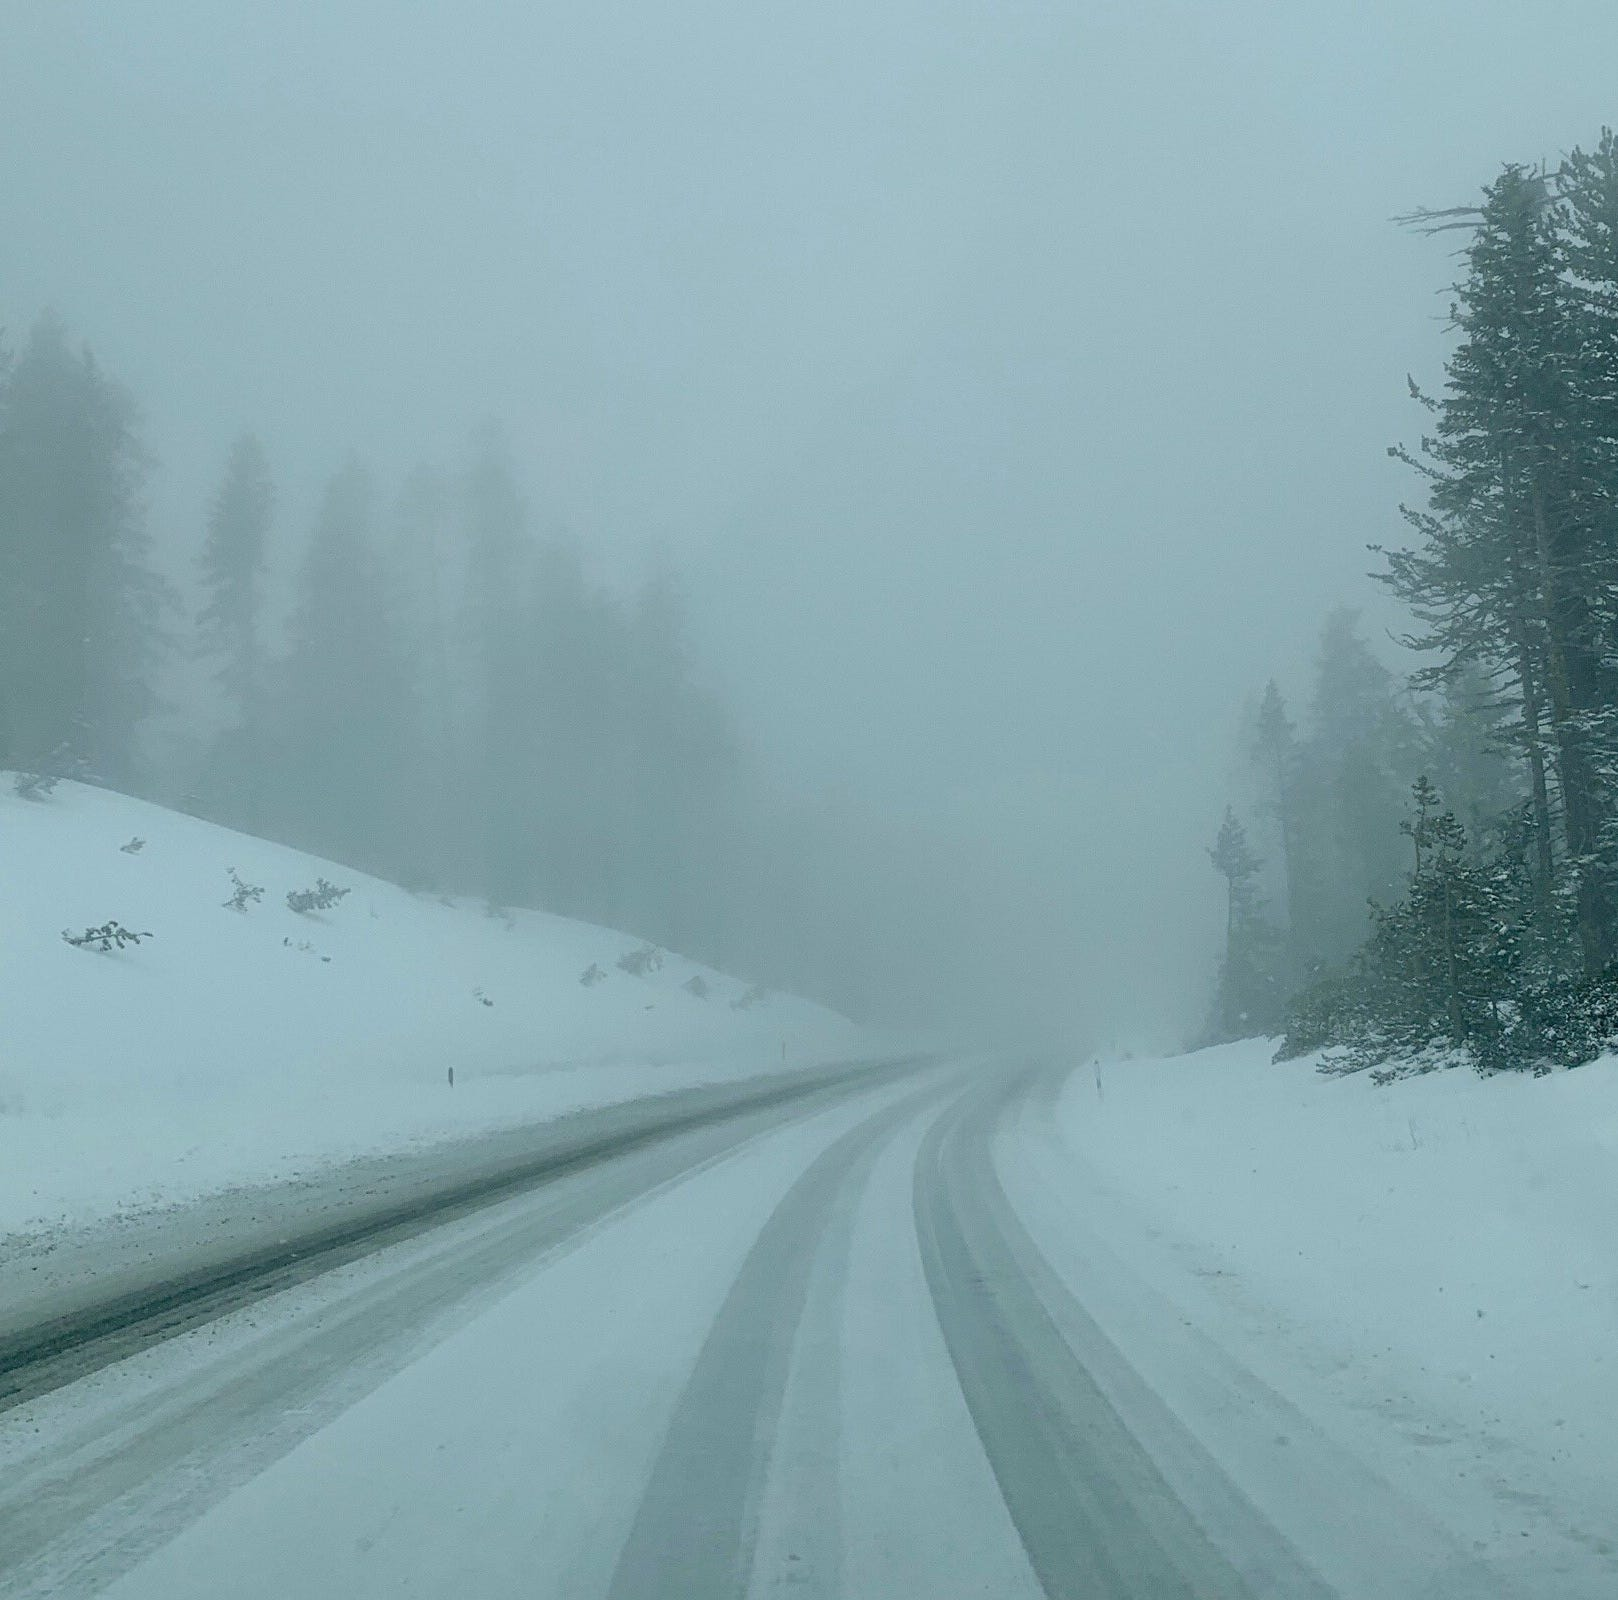 Drivers, beware of wintry conditions in the Sierra